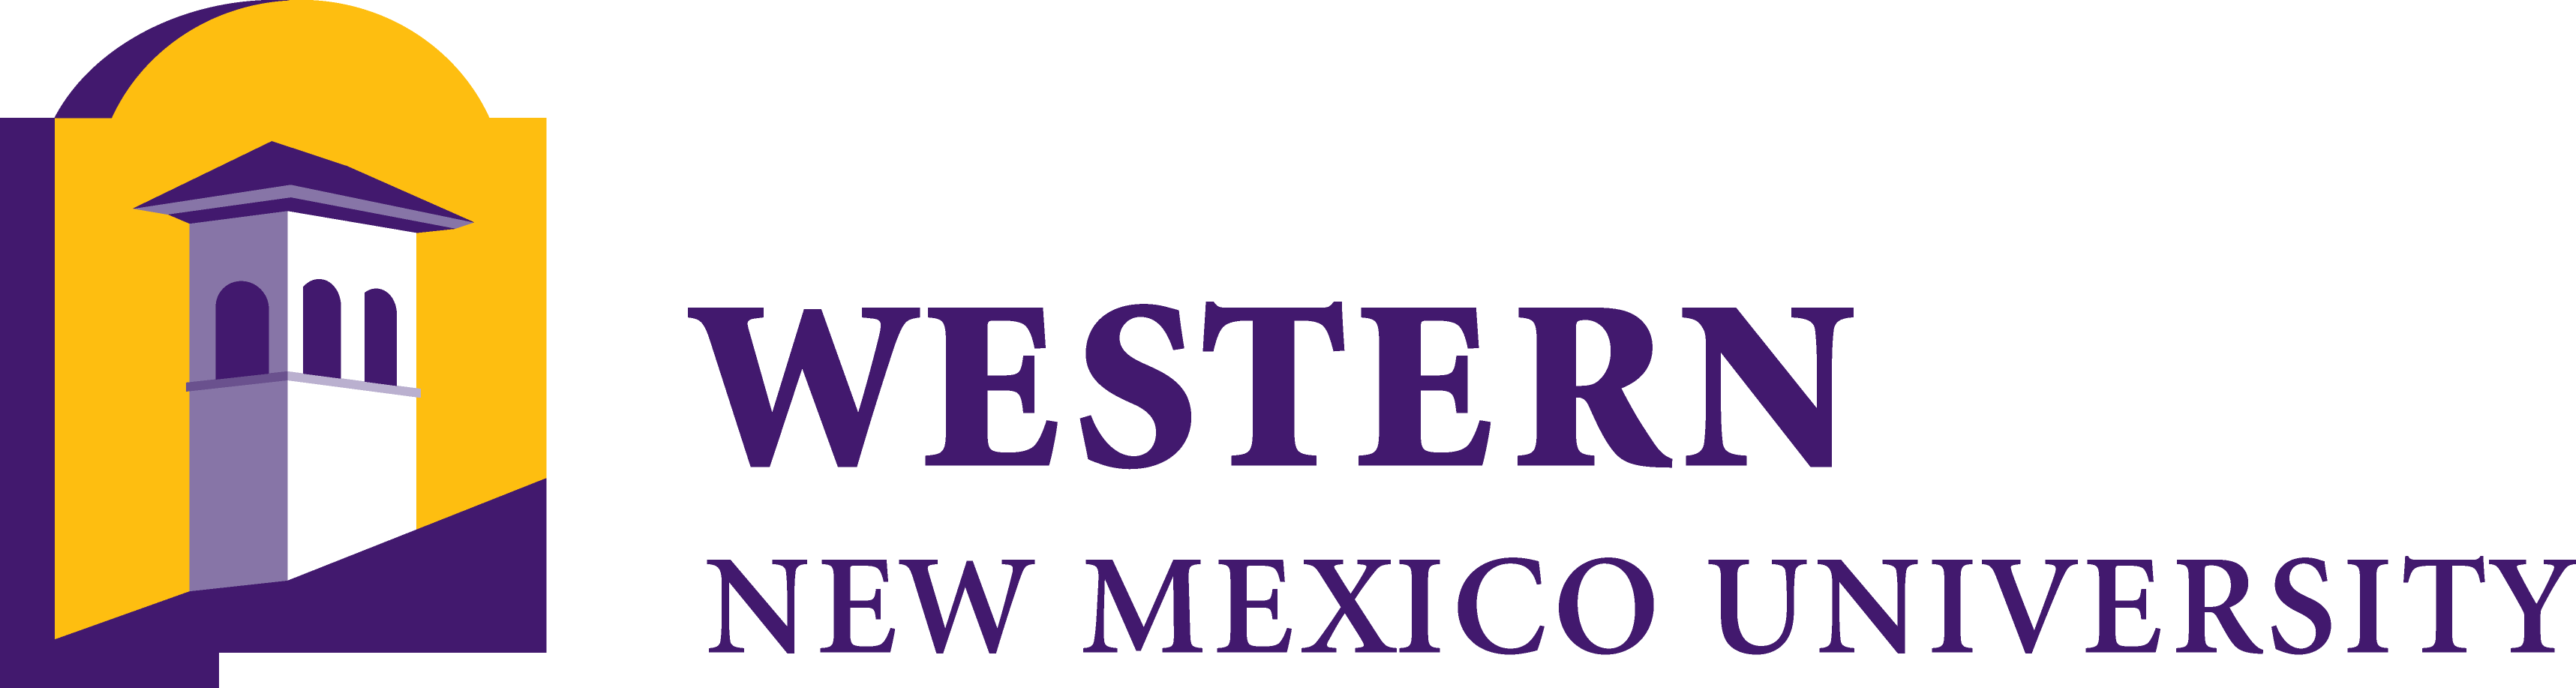 New mexico logo png. University identity standards institutional